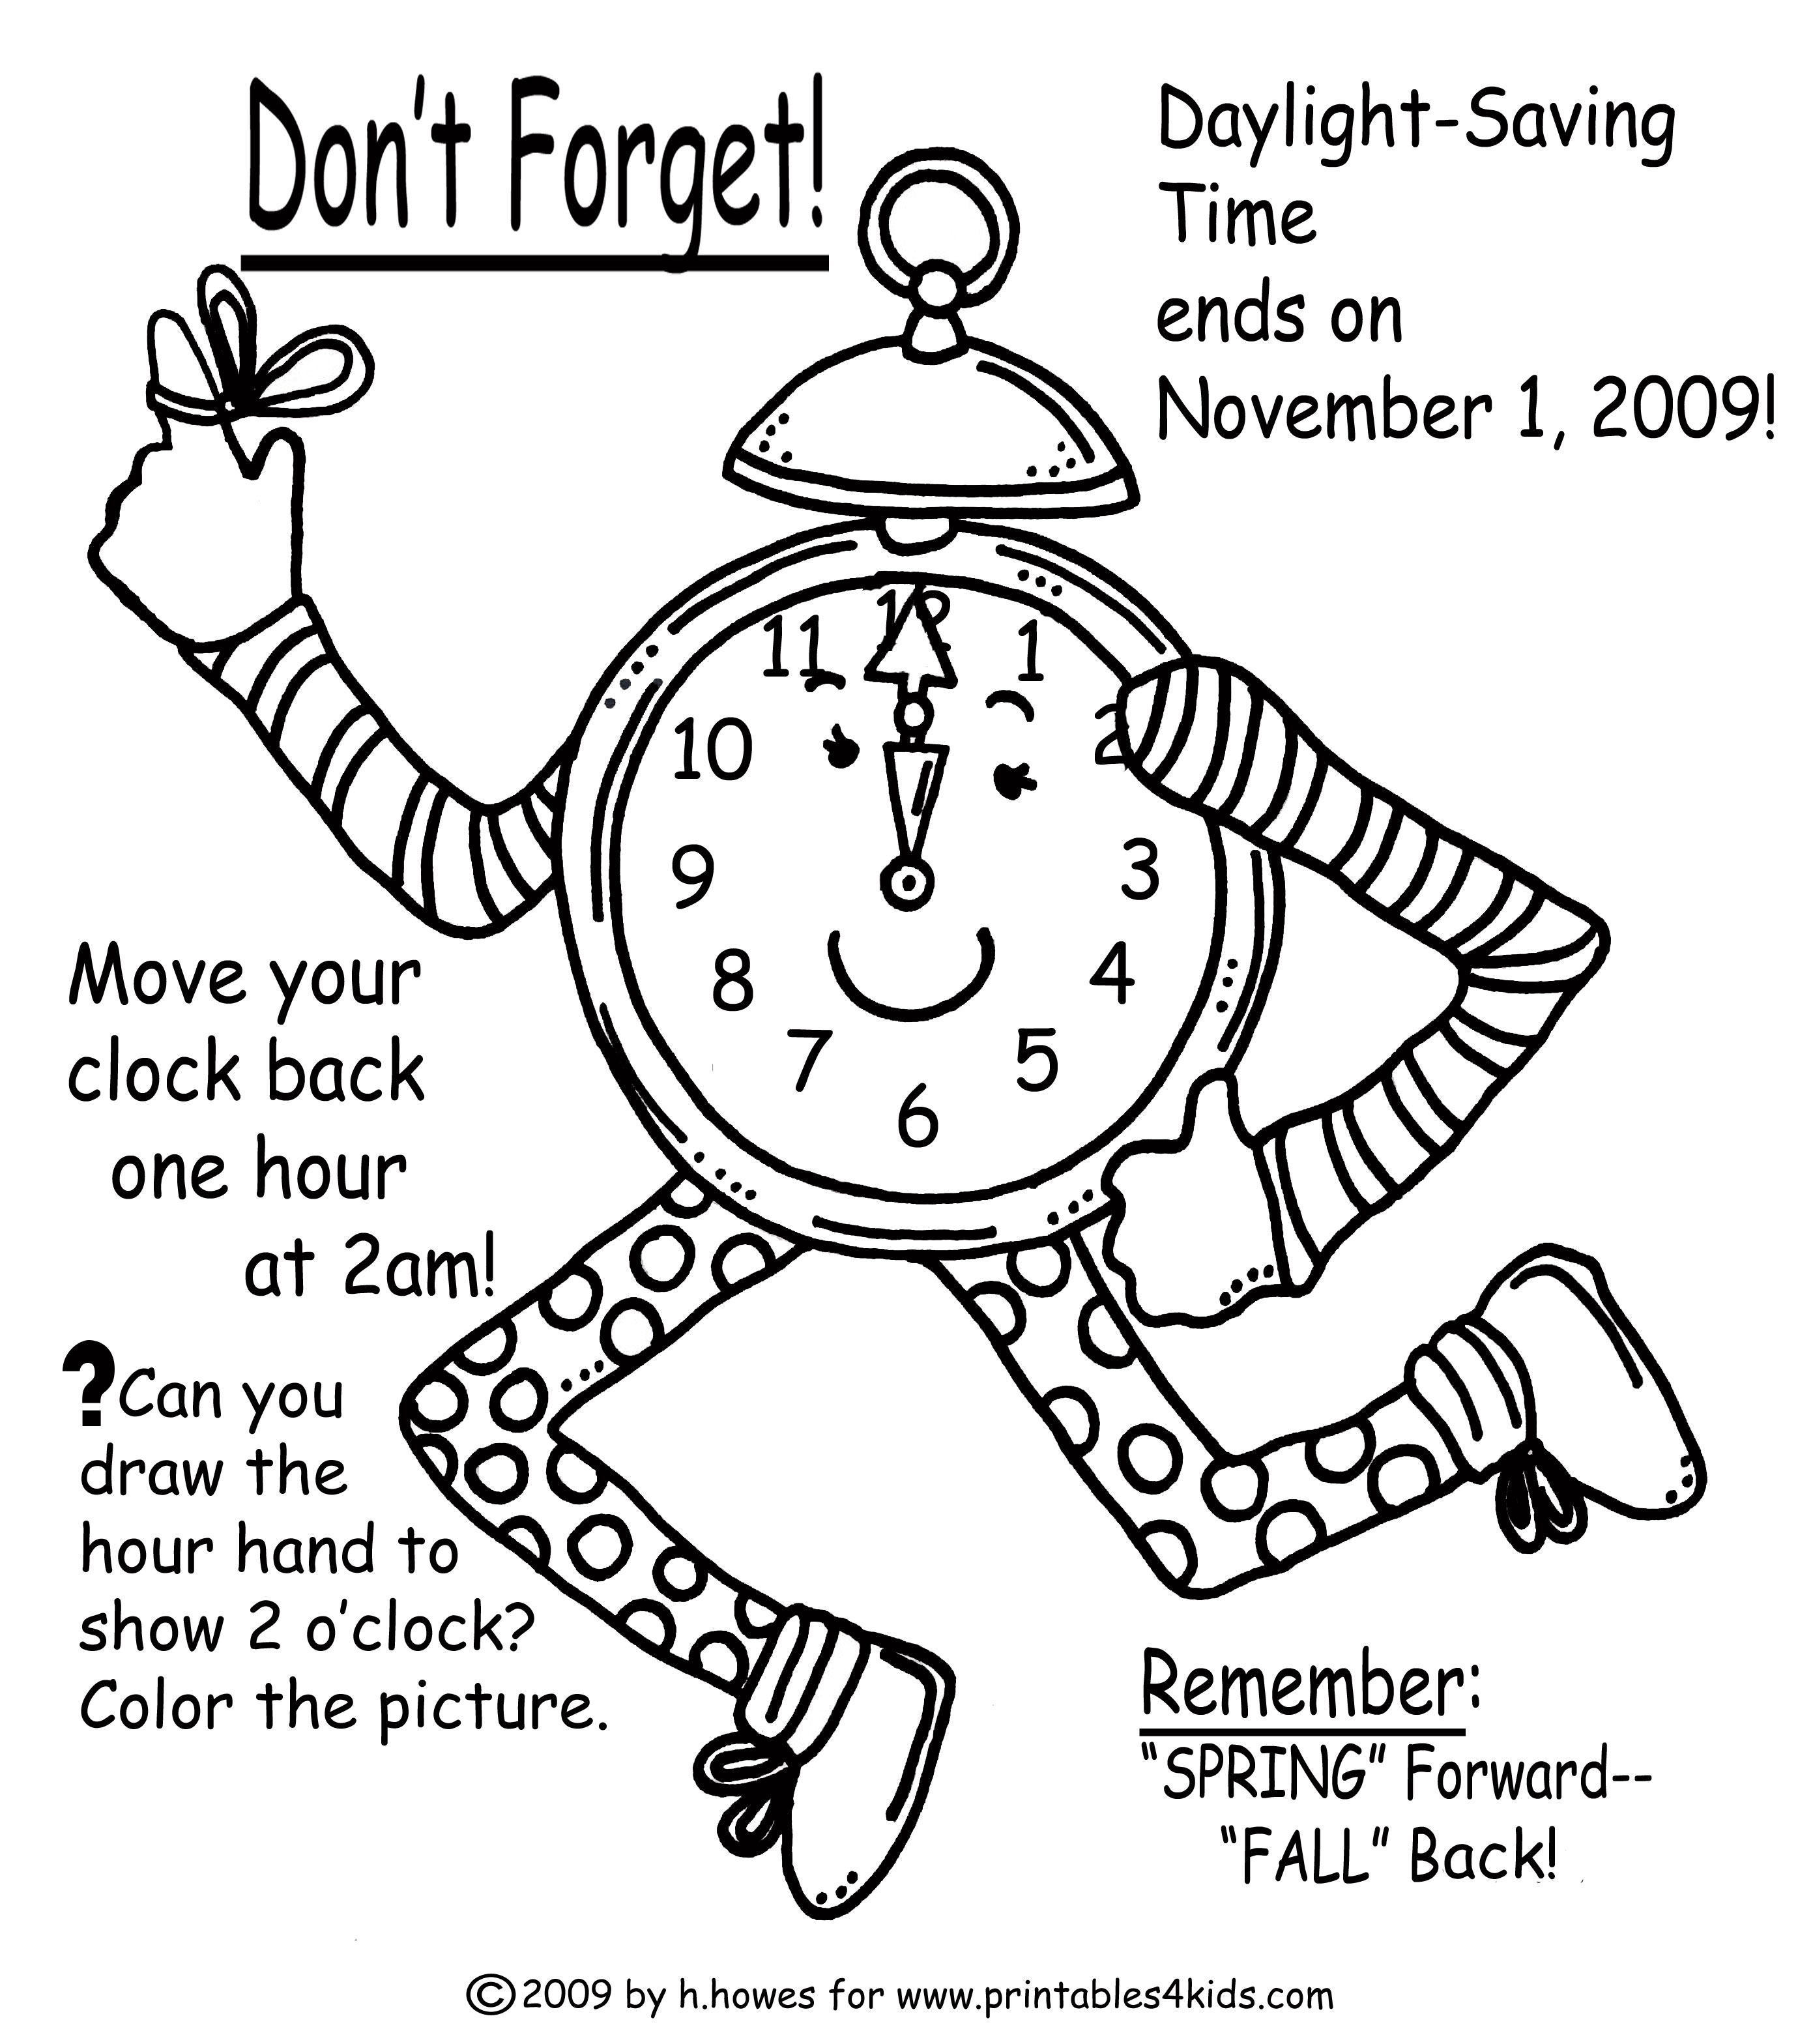 Fall Back Time Change Coloring Page Printables For Kids Free Word Search Puzzles Pages And Other Activities